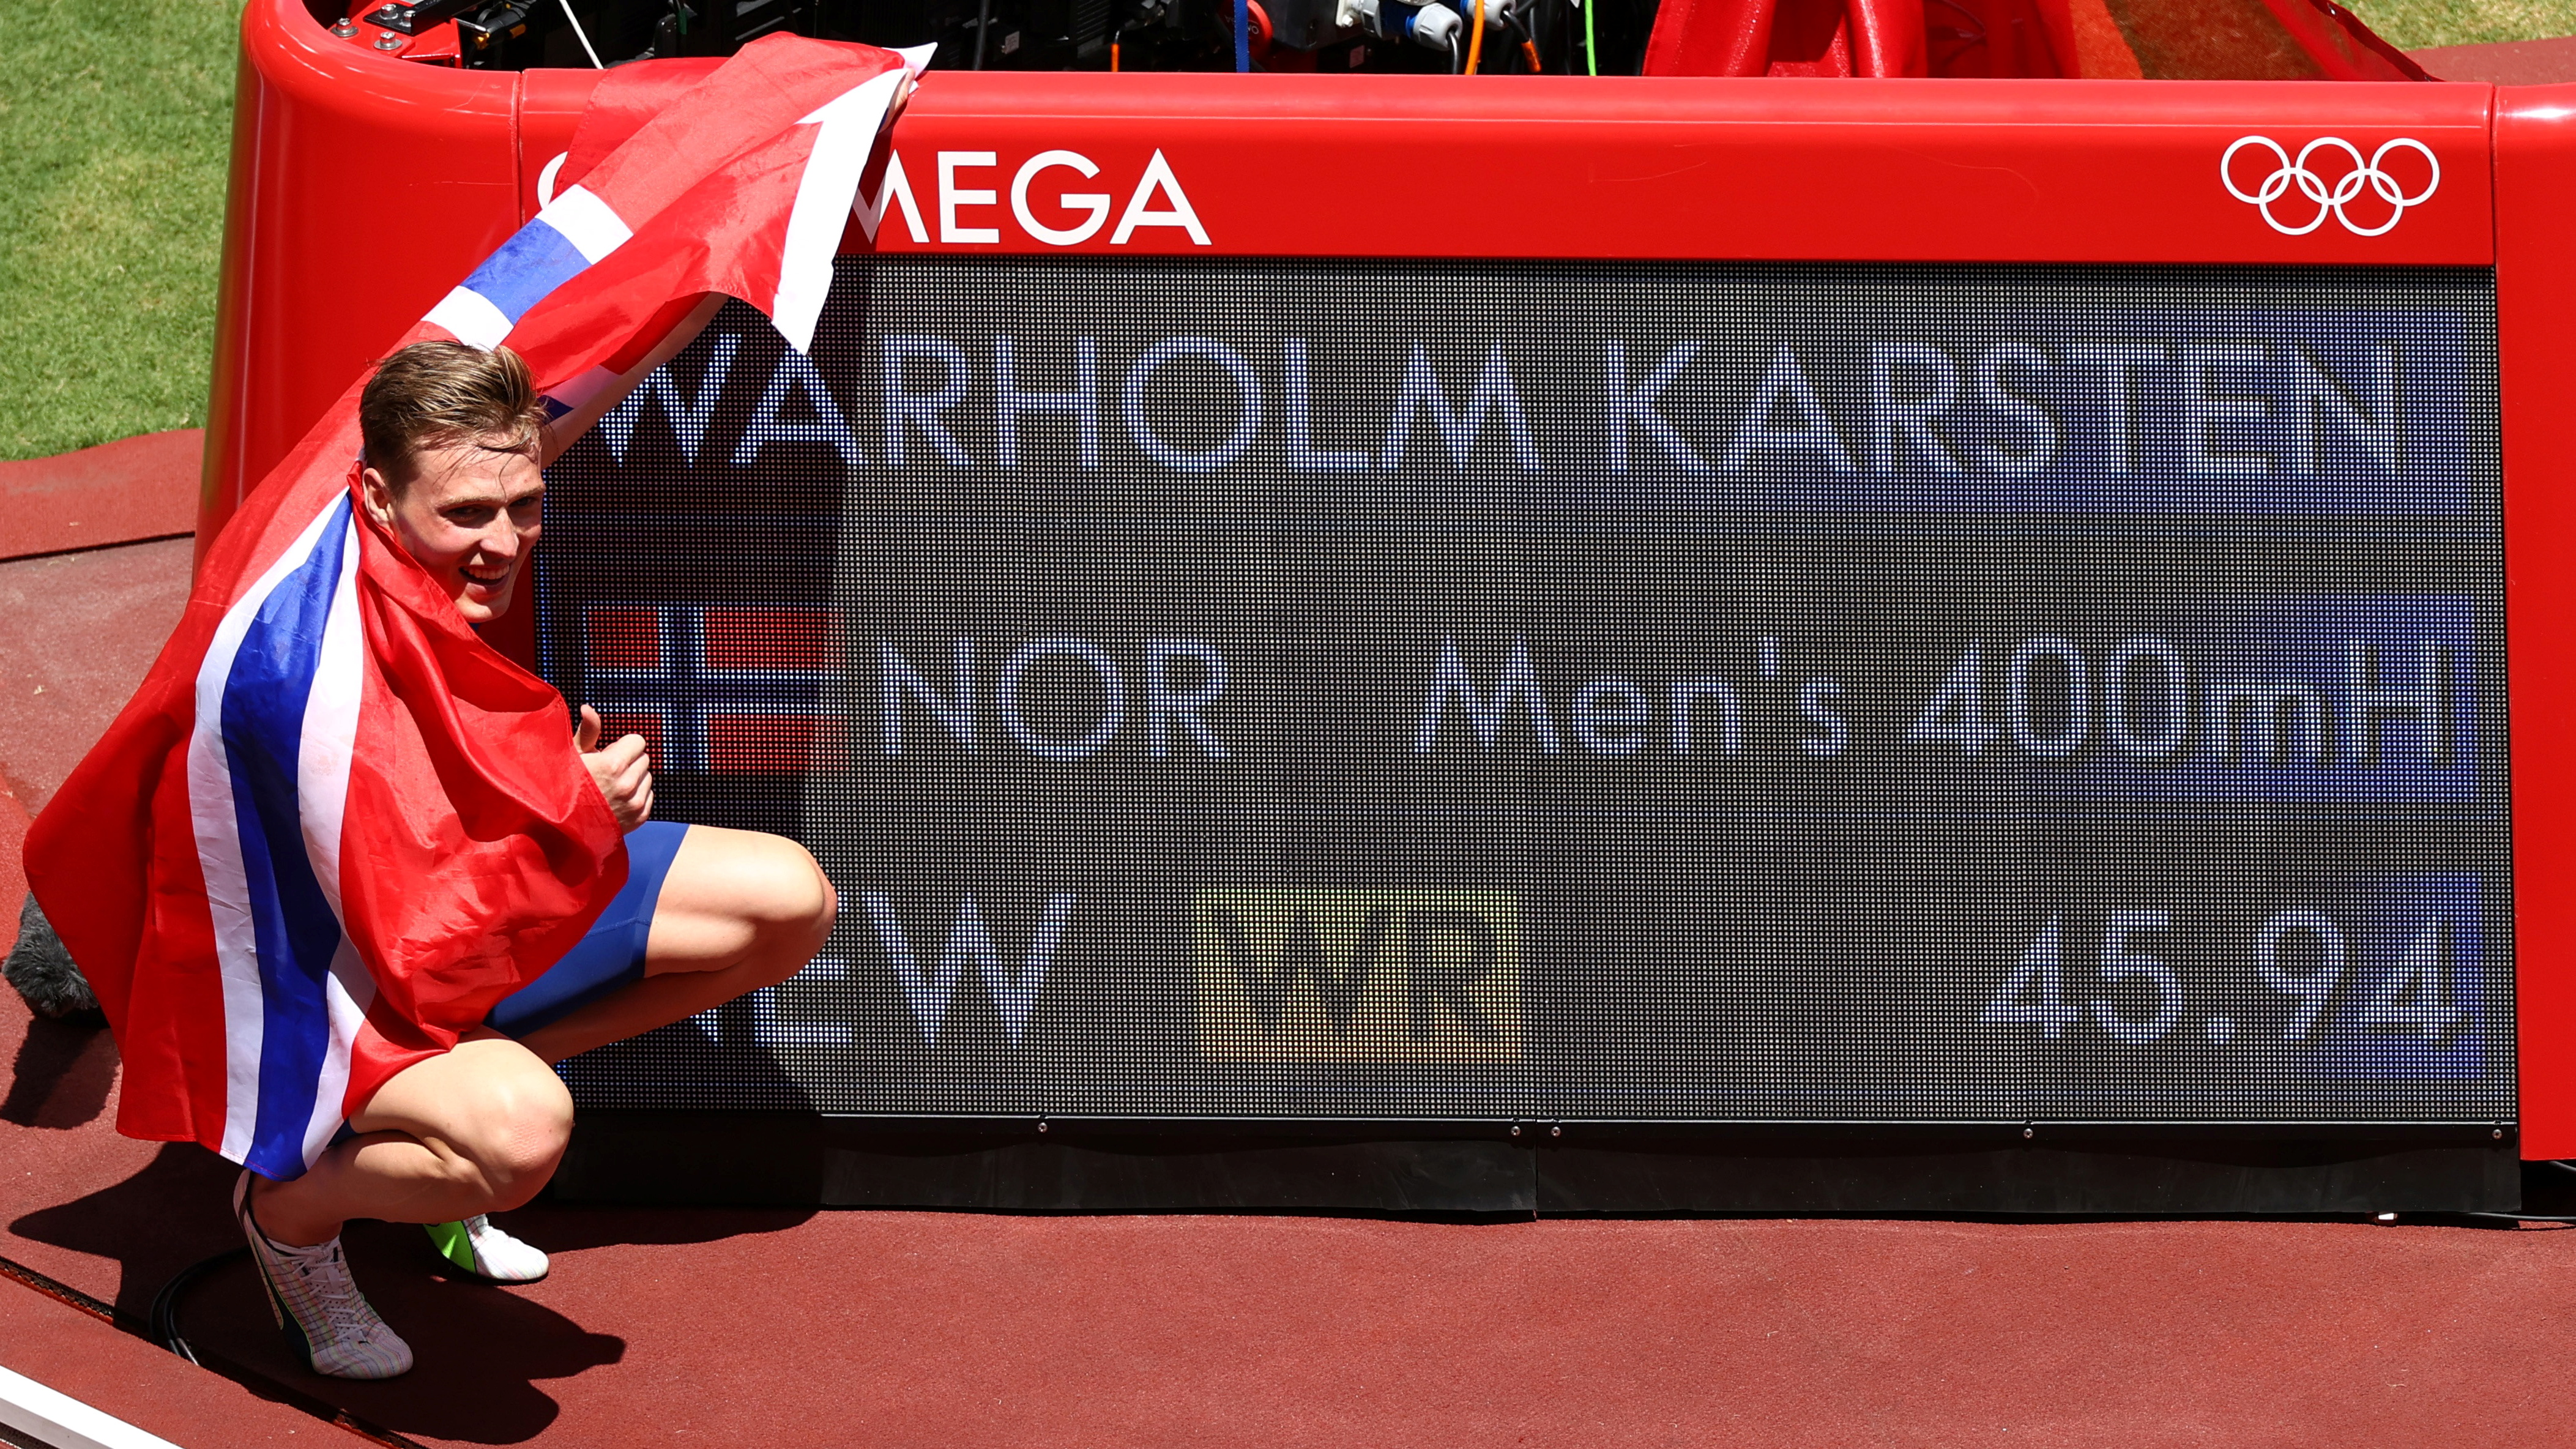 Tokyo 2020 Olympics - Athletics - Men's 400m Hurdles - Final - Olympic Stadium, Tokyo, Japan - August 3, 2021. Karsten Warholm of Norway poses next to his new world record as he celebrates after winning gold. REUTERS/Andrew Boyers